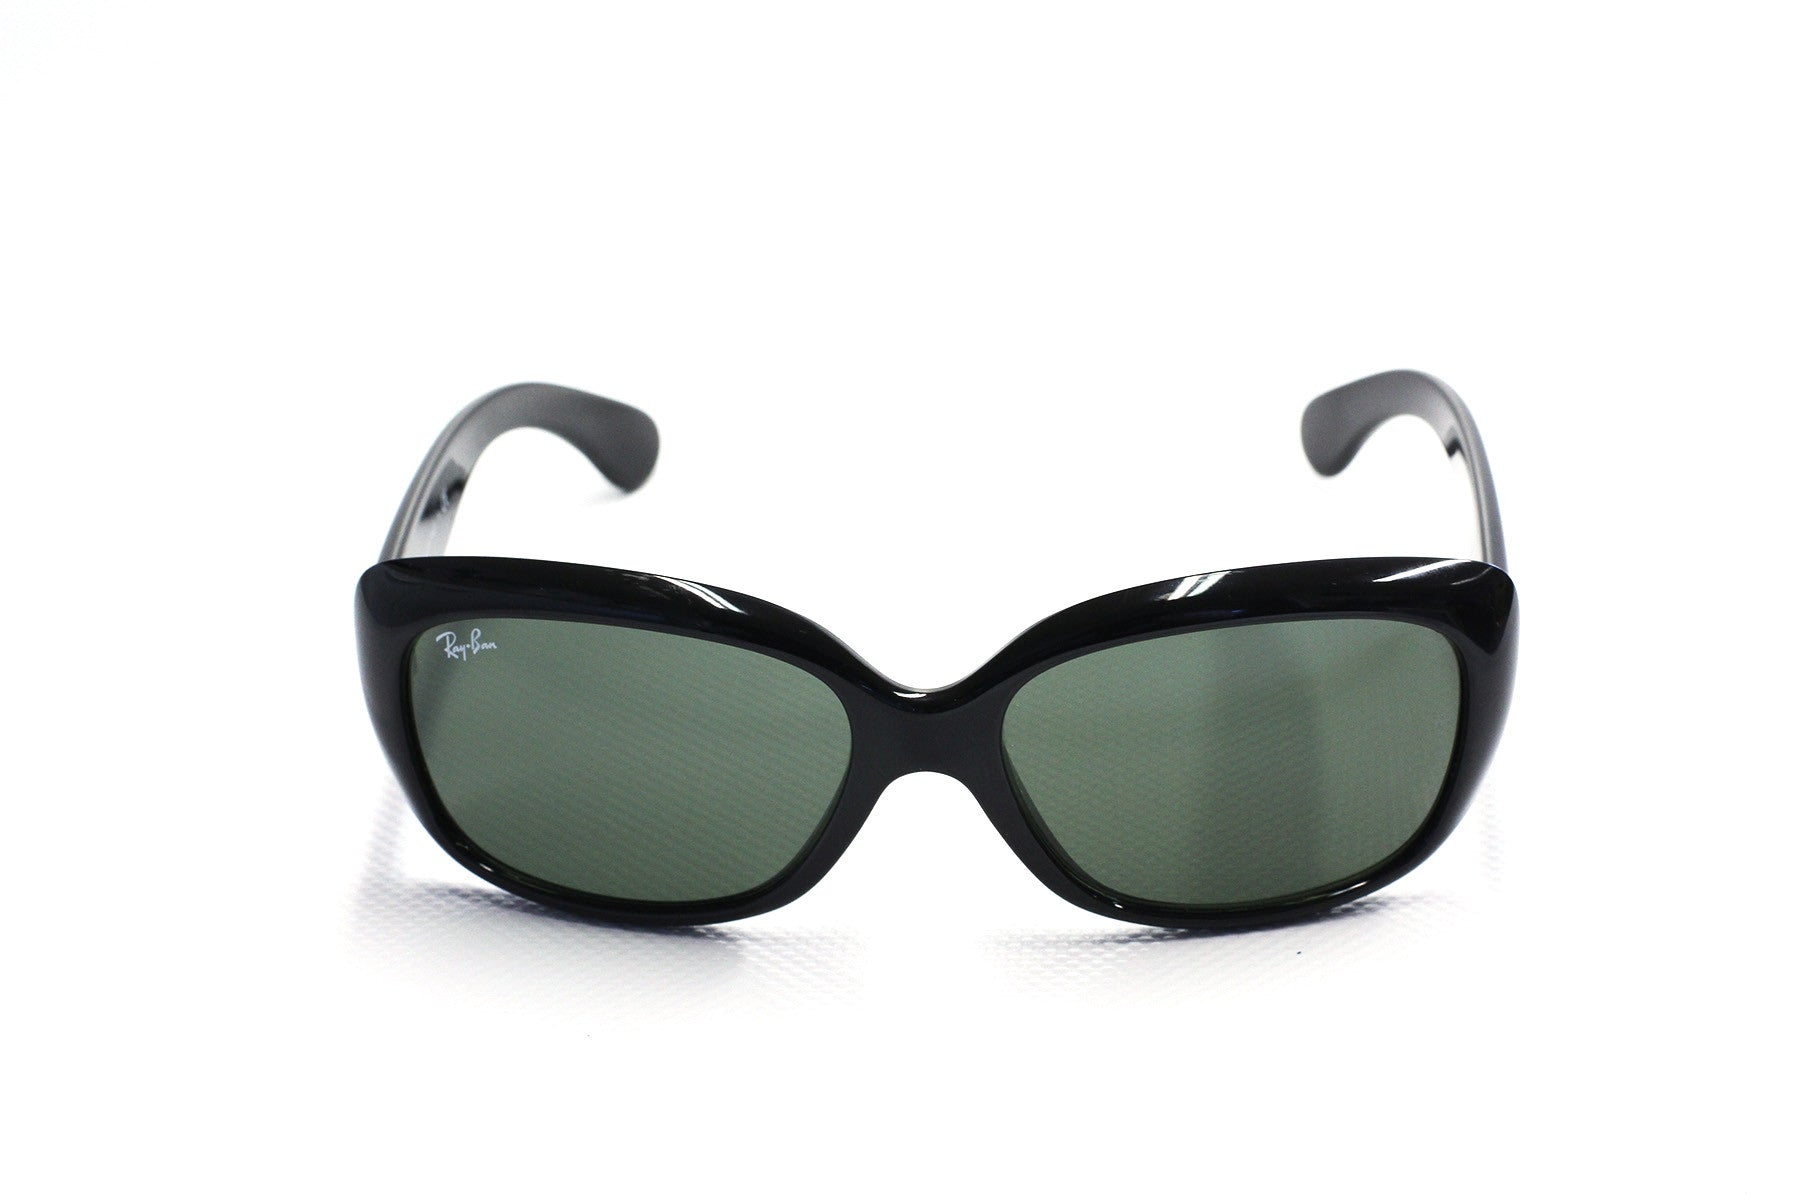 Ray-Ban RB4101 Jackie Ohh 601 Black Sunglasses at Enderbys UK